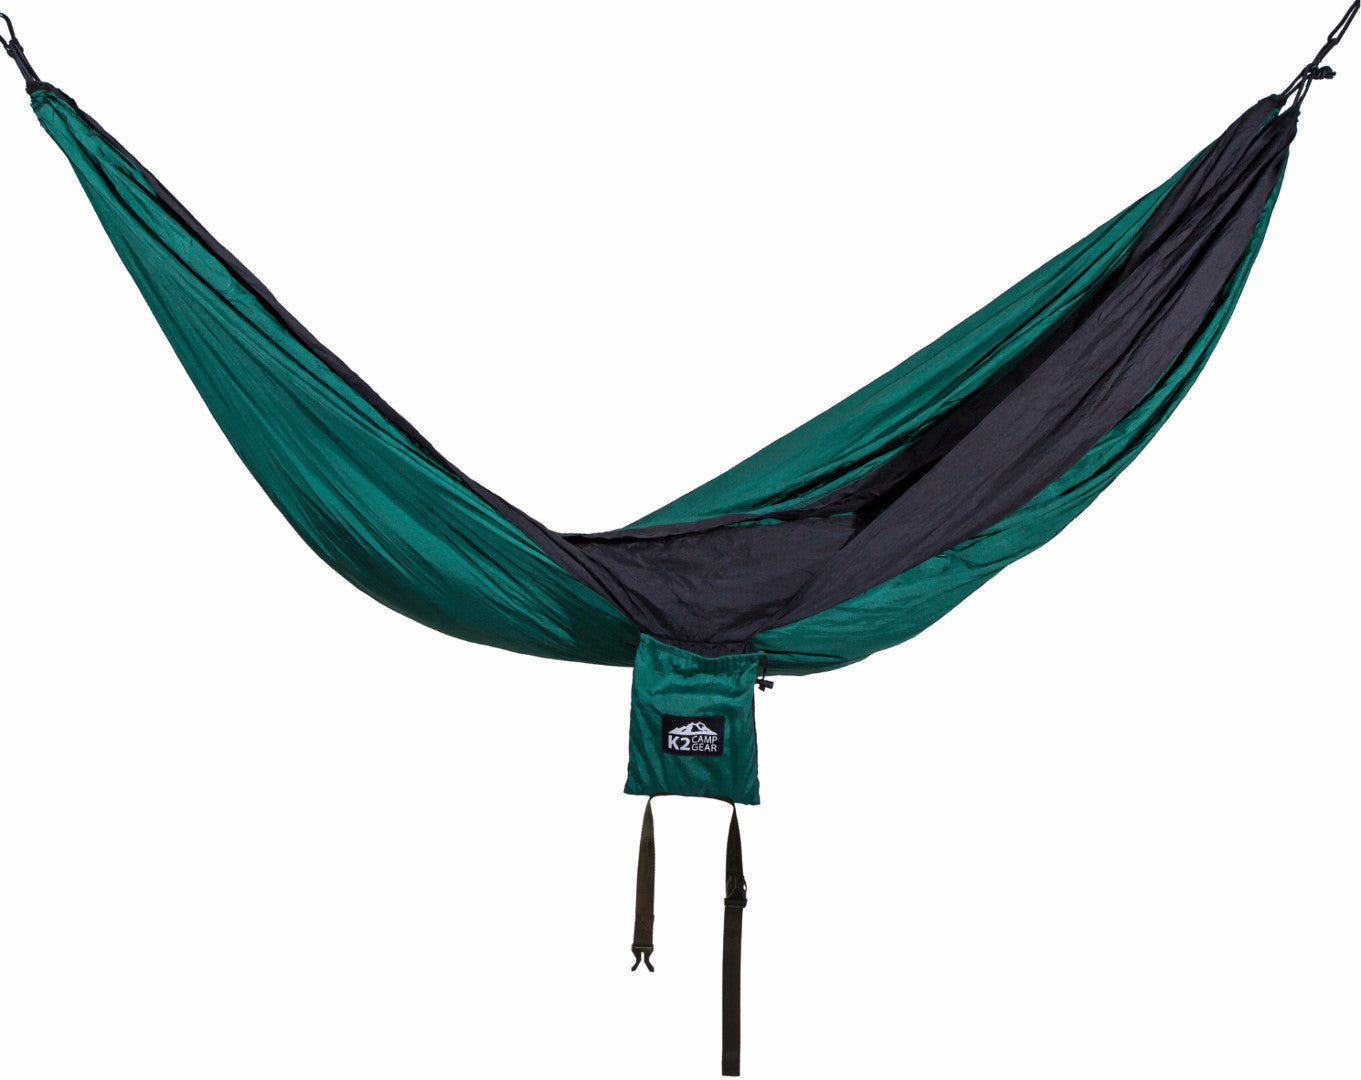 Original Double Camping Hammock (Forest Green/Black) - K2campgear - 4